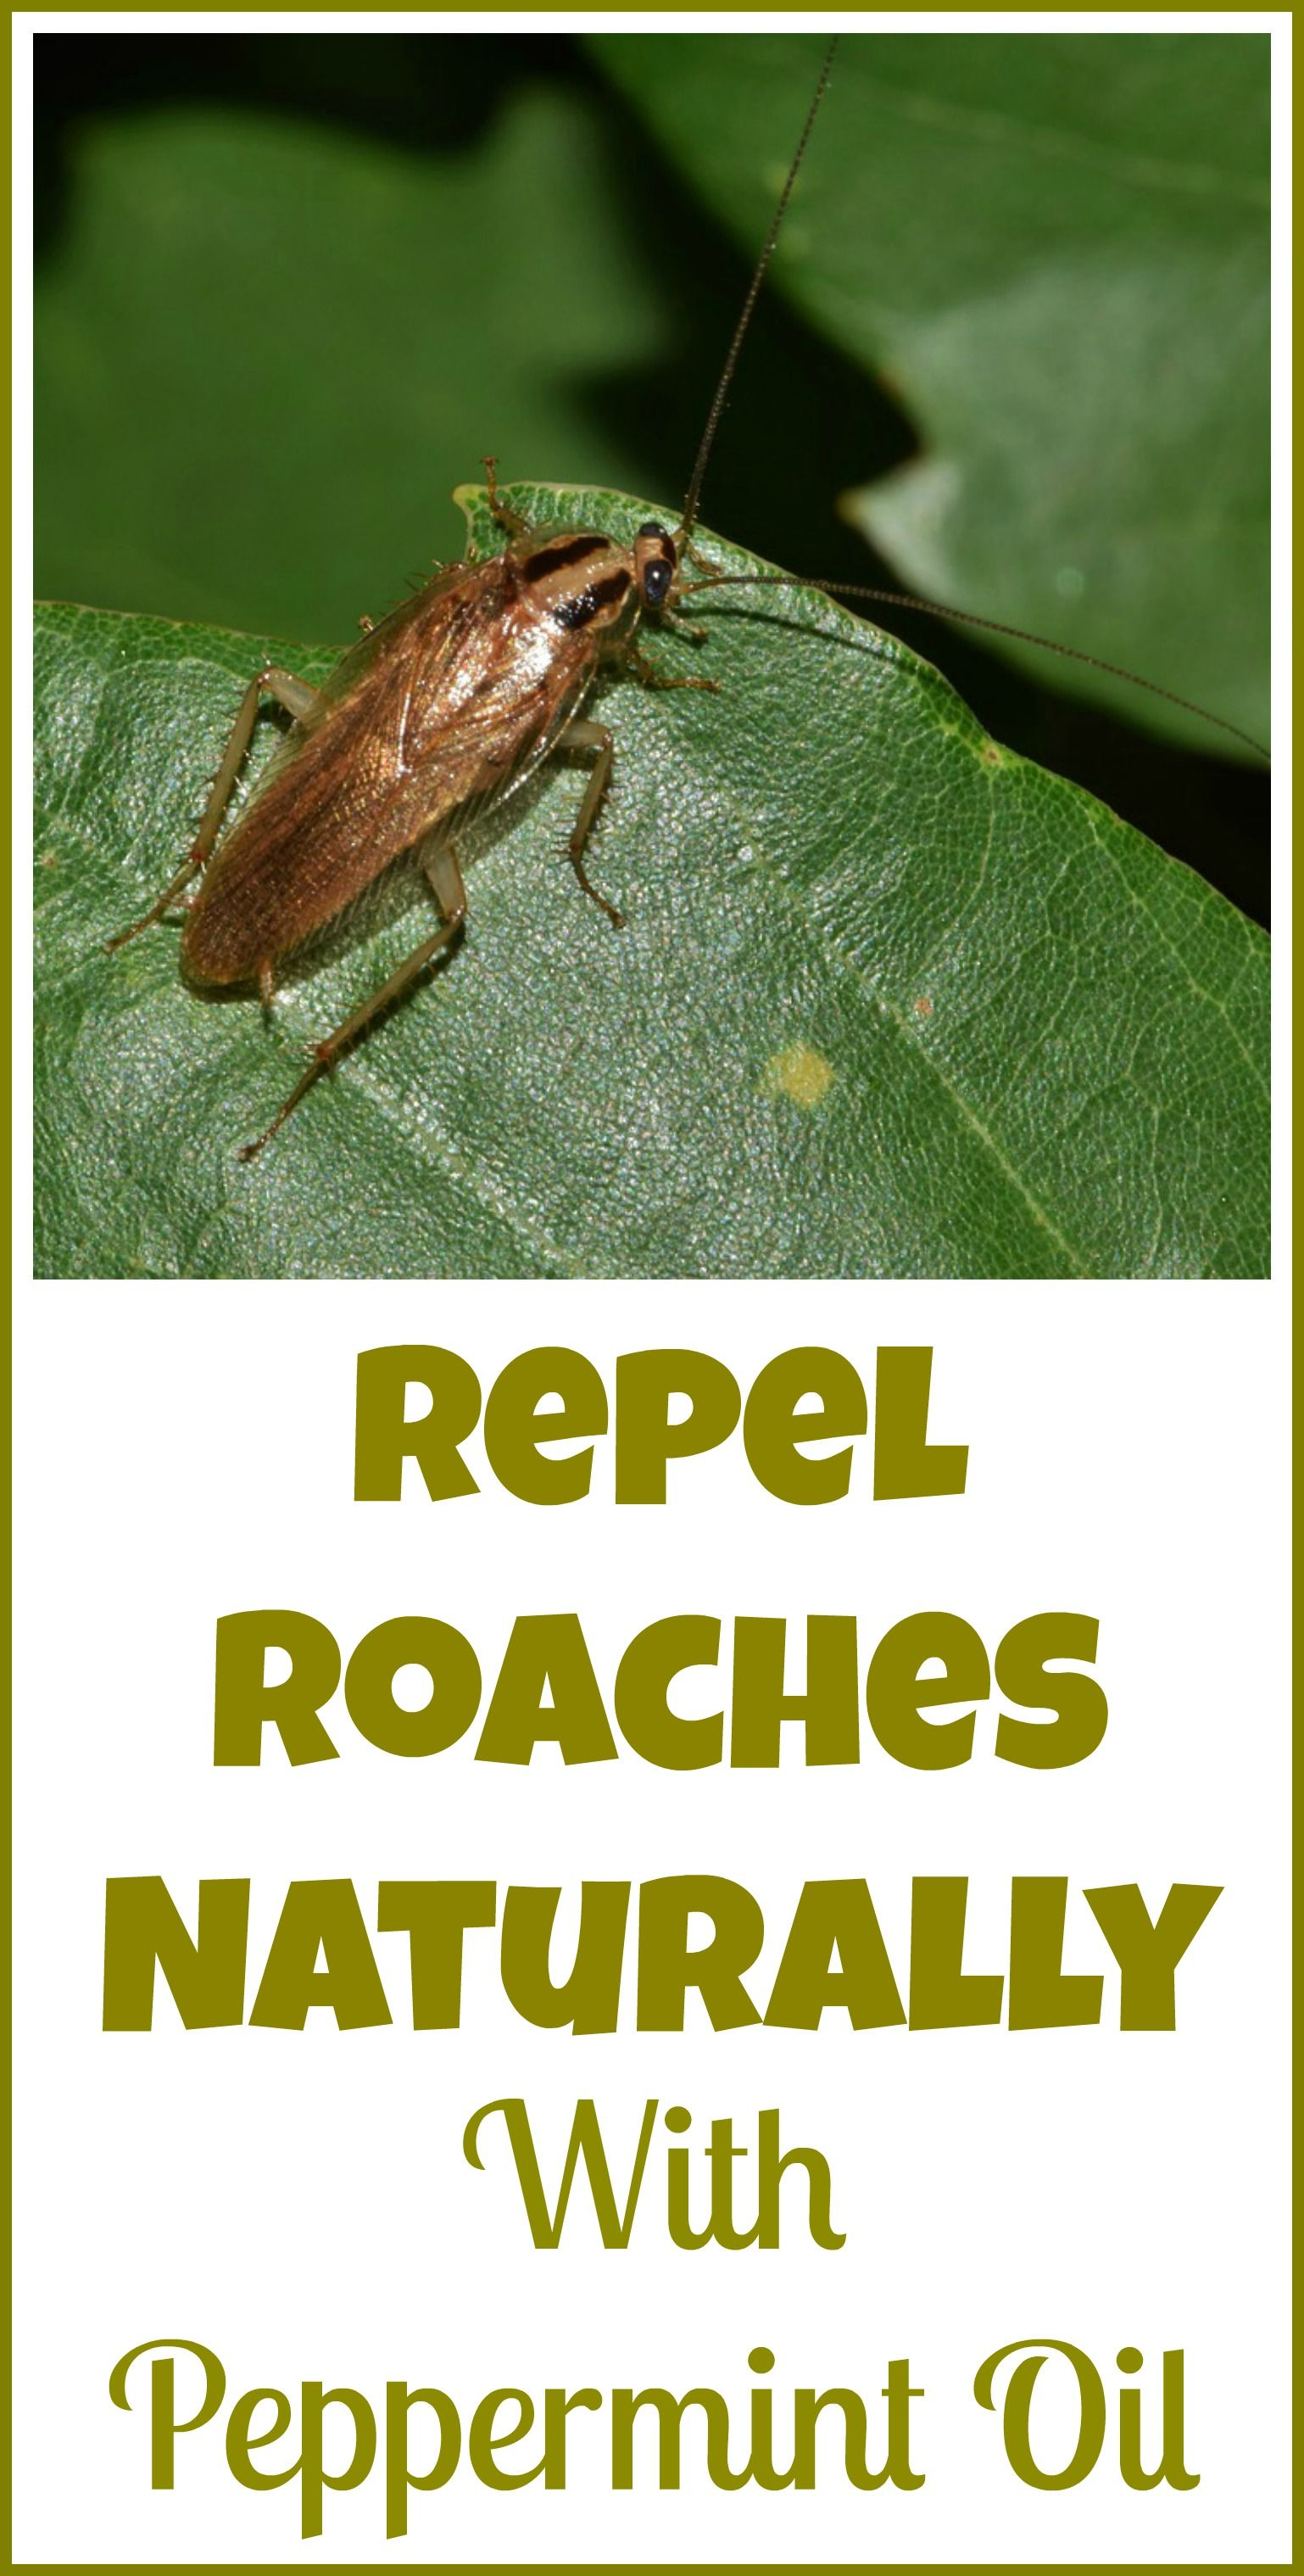 A good remedy for cockroaches, or How to get rid of annoying neighbors